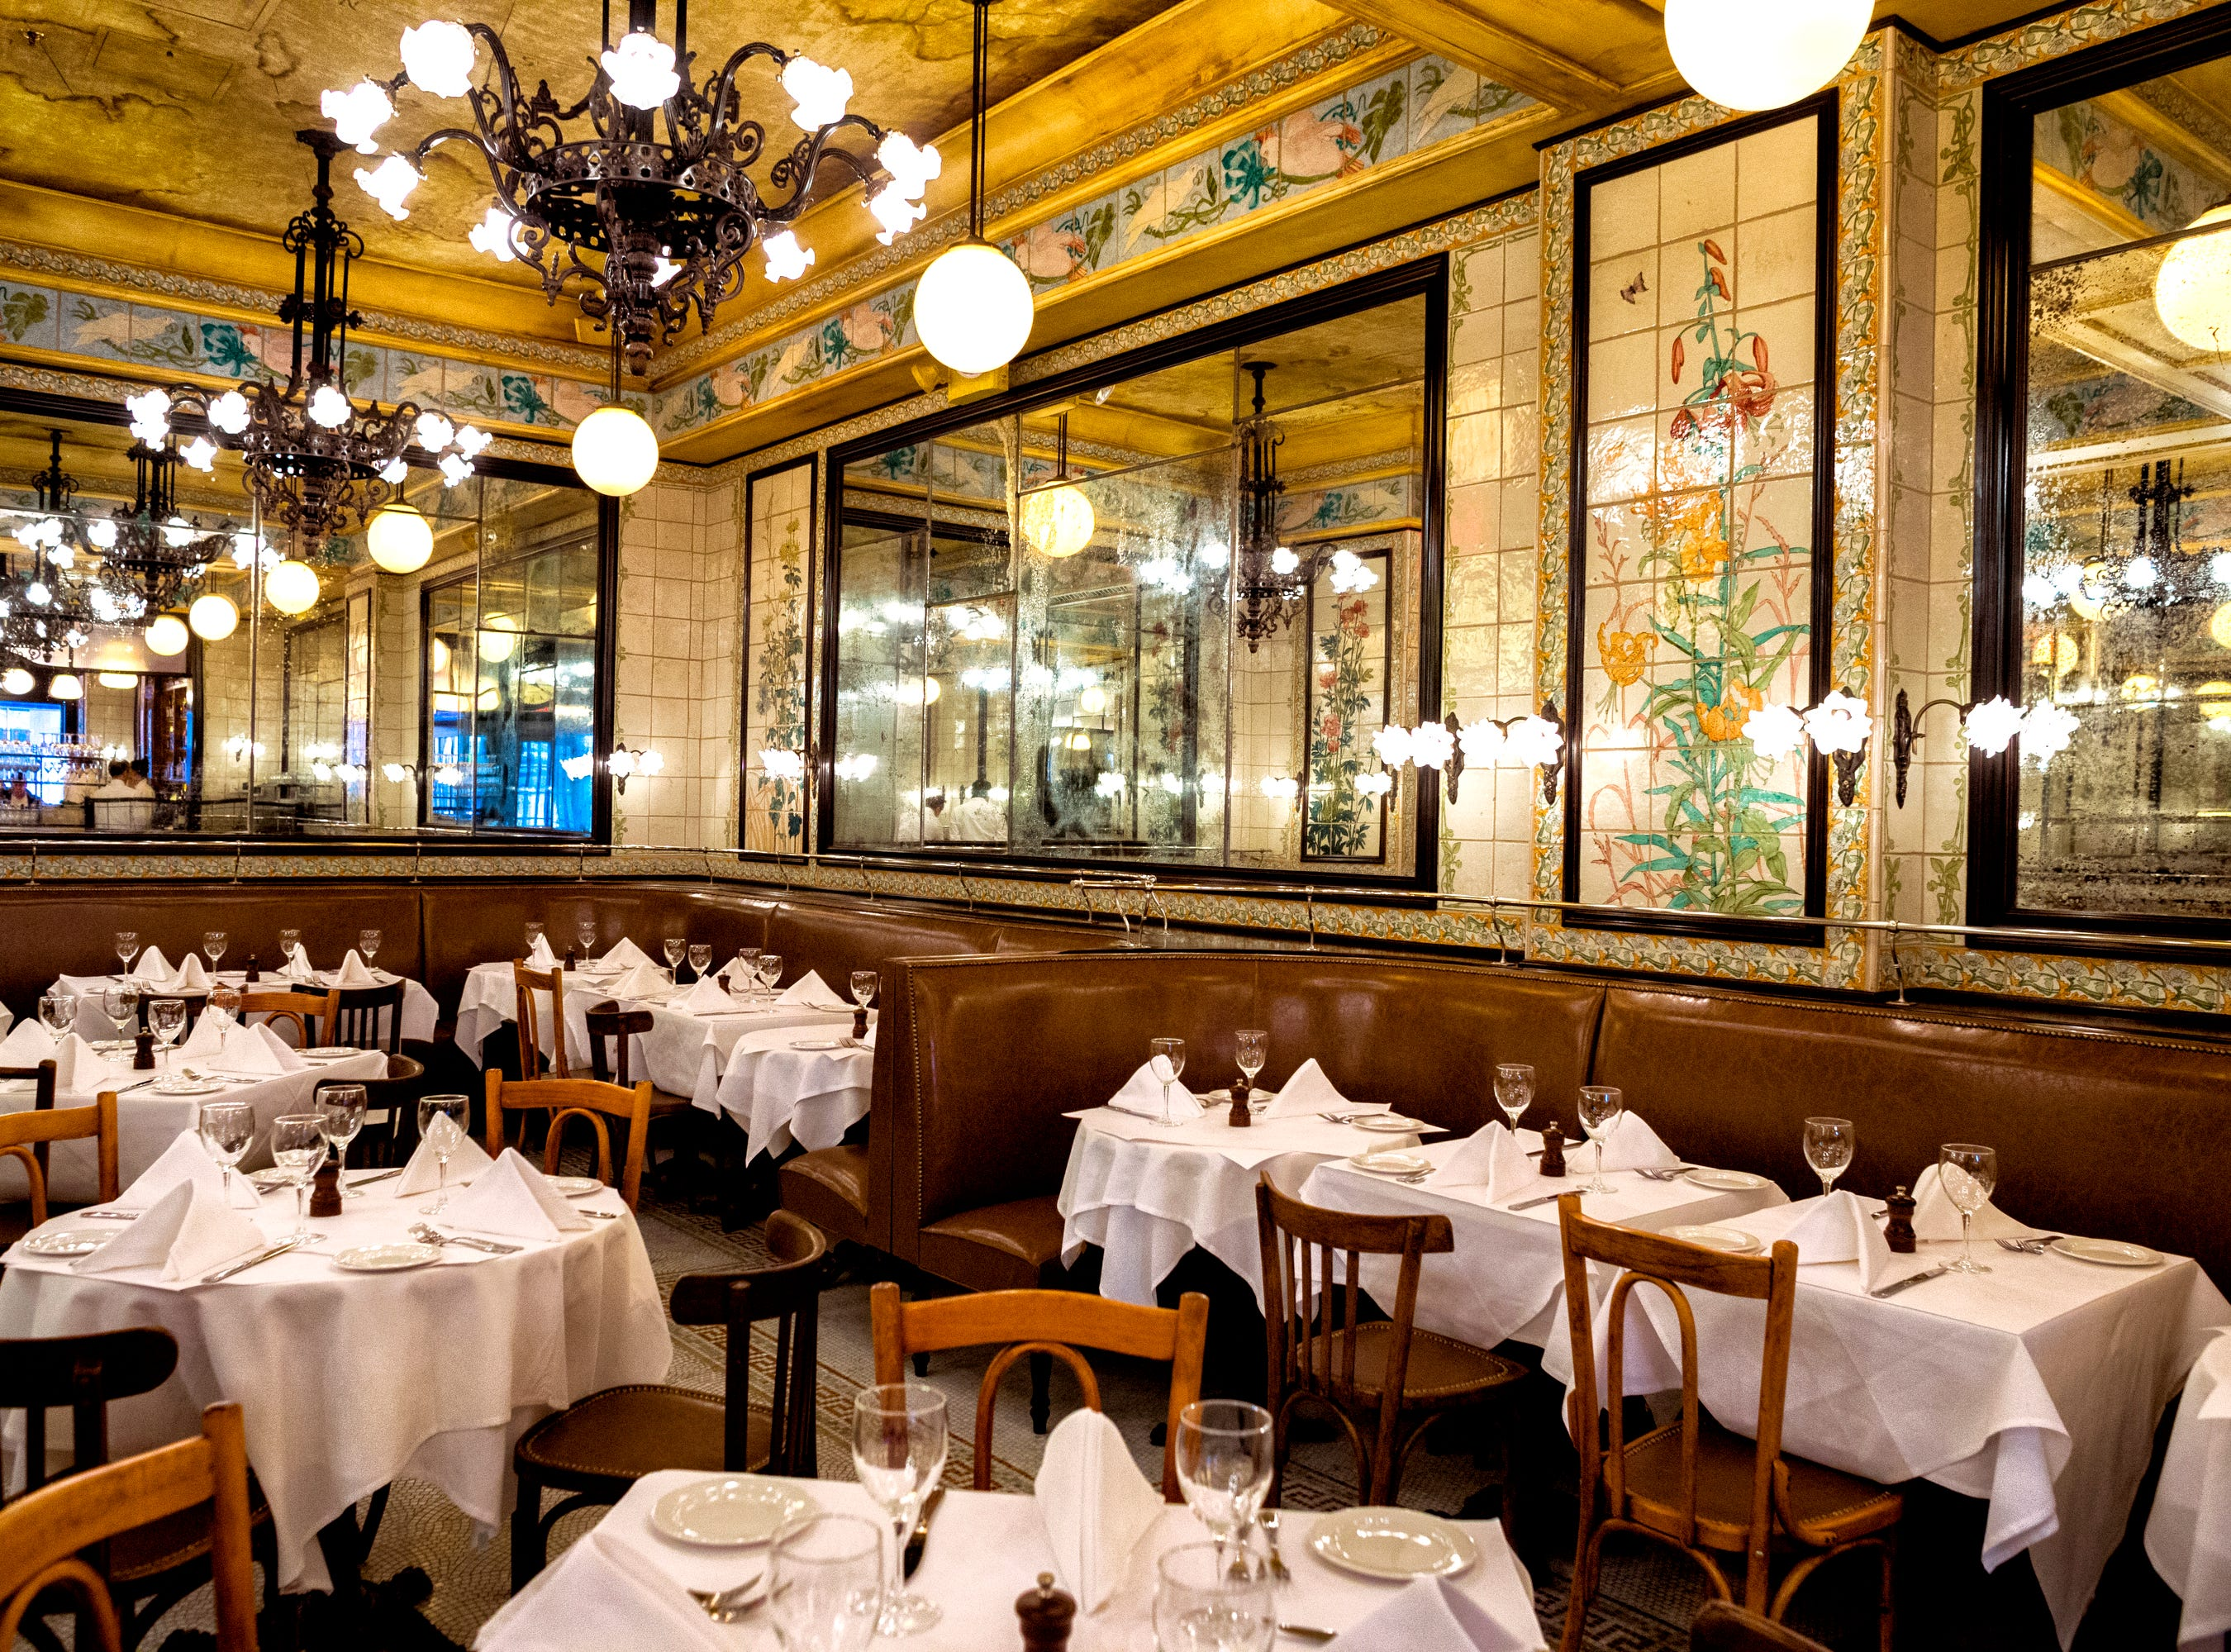 Augustine Restaurant is one of almost 400 restaurants participating in NYC Restaurant Week from Jan. 21 to Feb. 8. Diners will get two-course prix-fixe lunches and brunches for $26. They will get three-course prix-fixe dinner for $42.